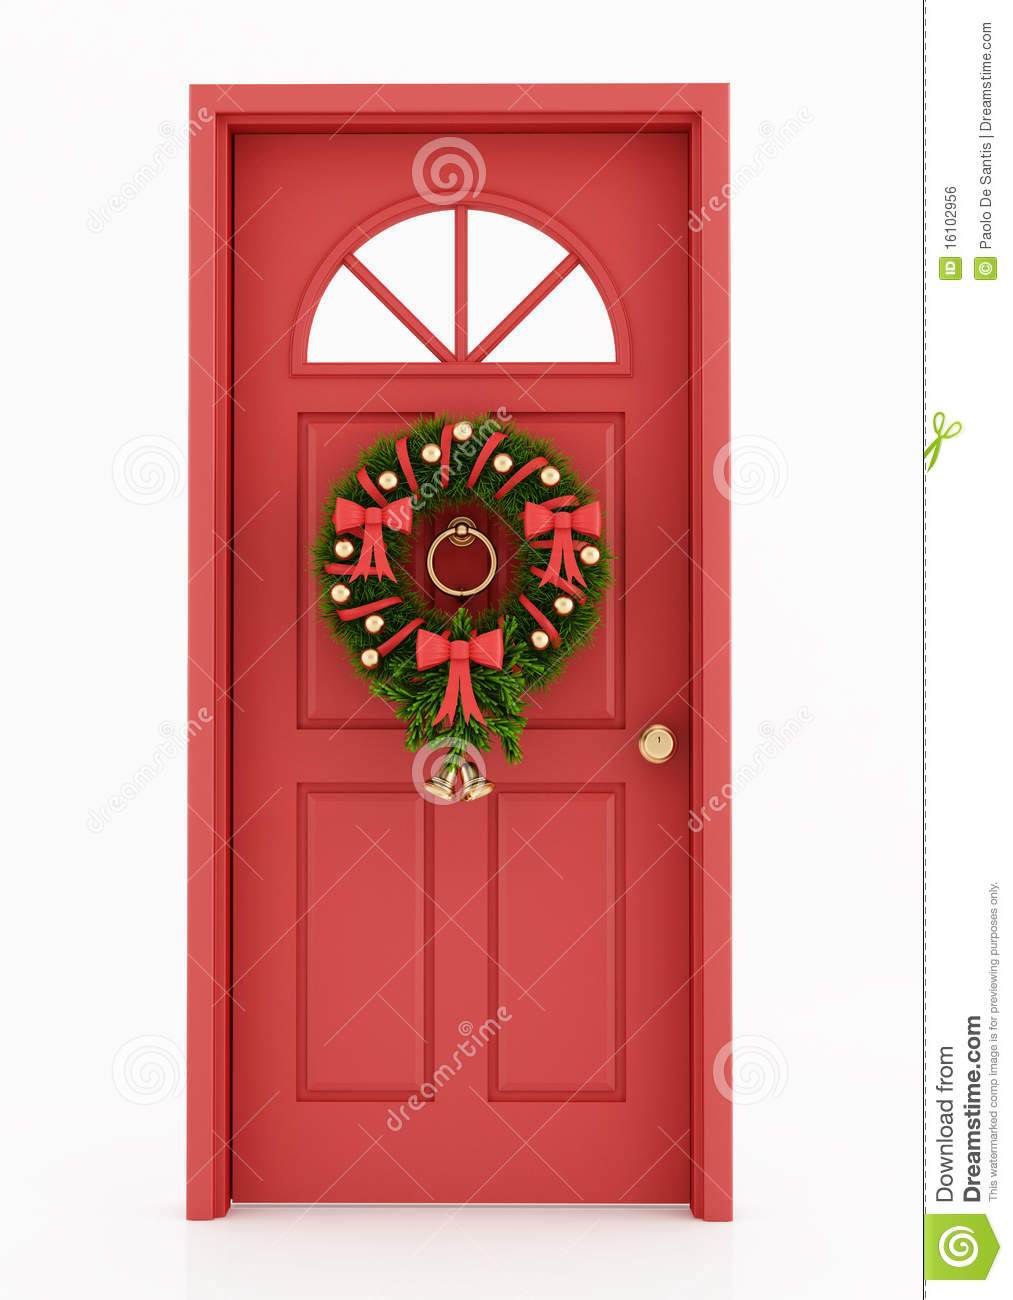 ... Door With Christmas Wreath Royalty Free Stock Image - Image: 16102956